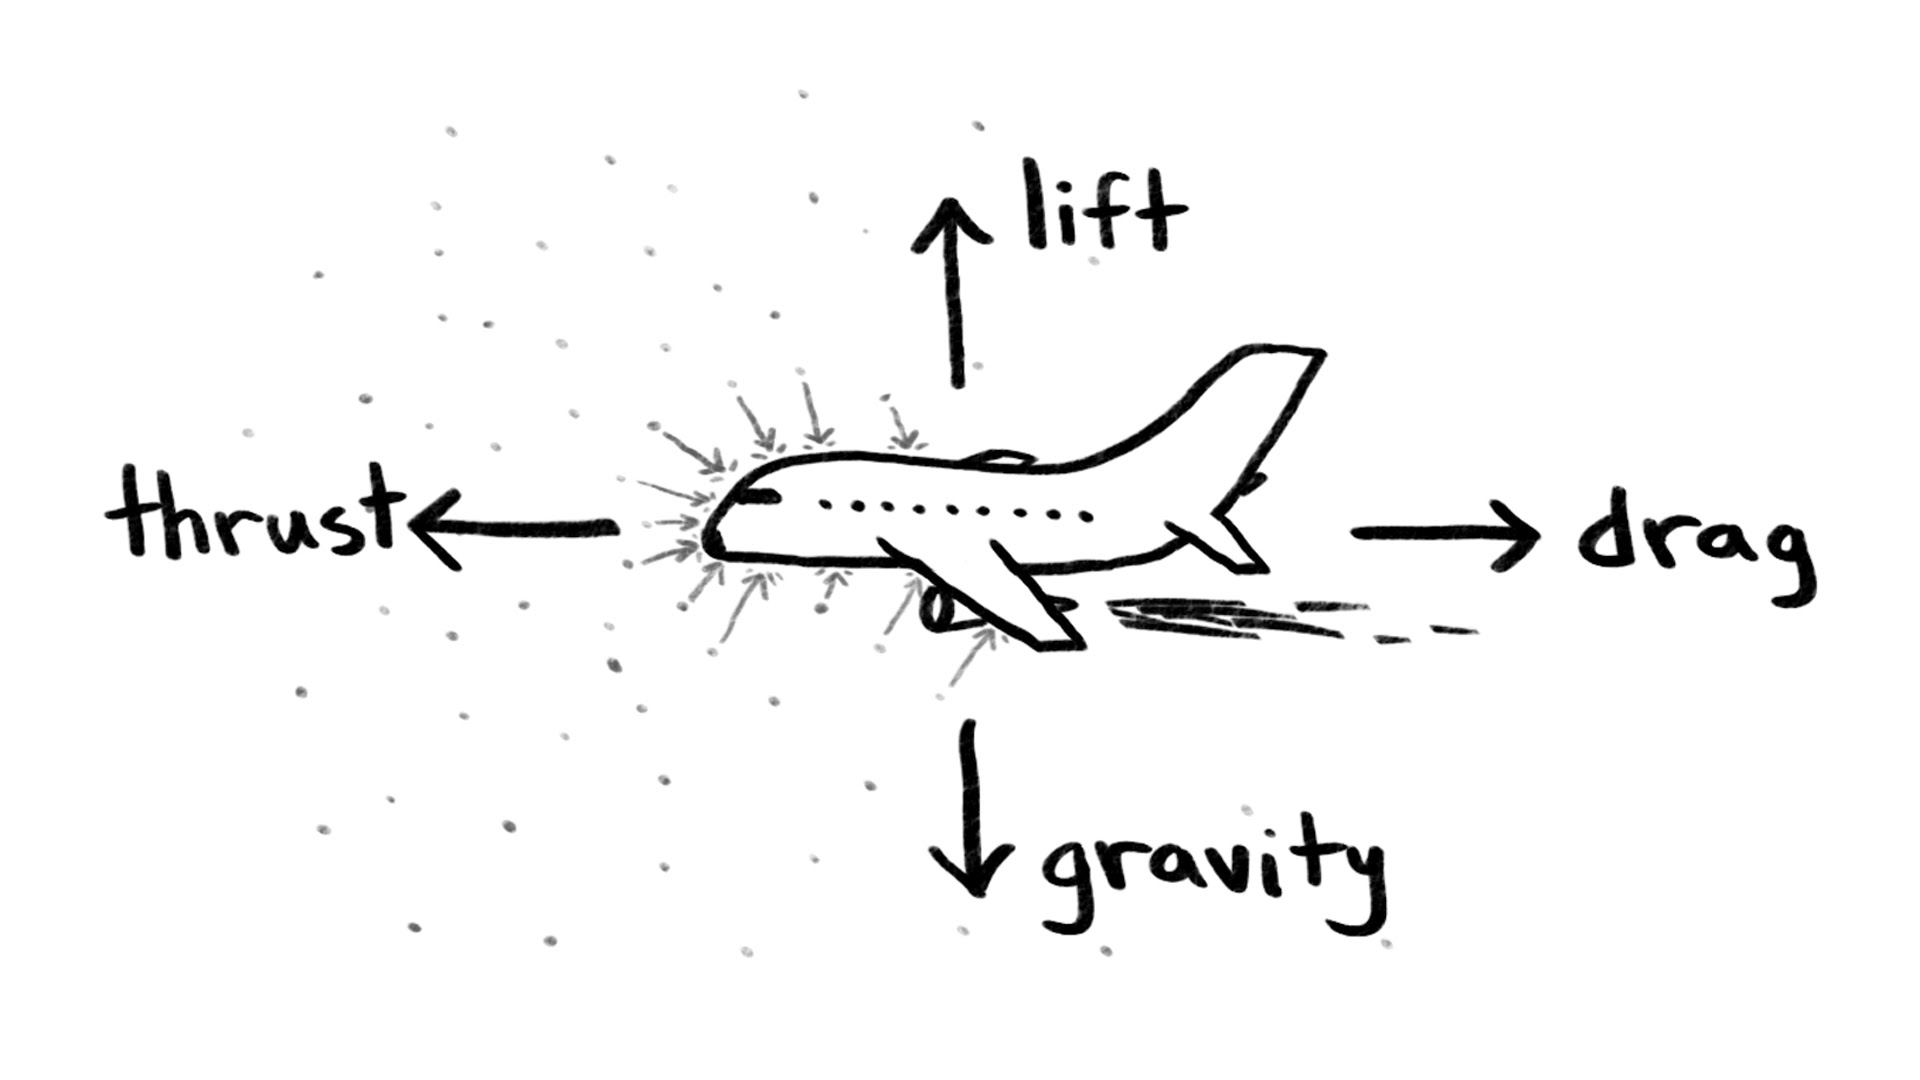 cool paper plane diagram mercedes w211 wiring diagrams why do airplanes fly aviation blog